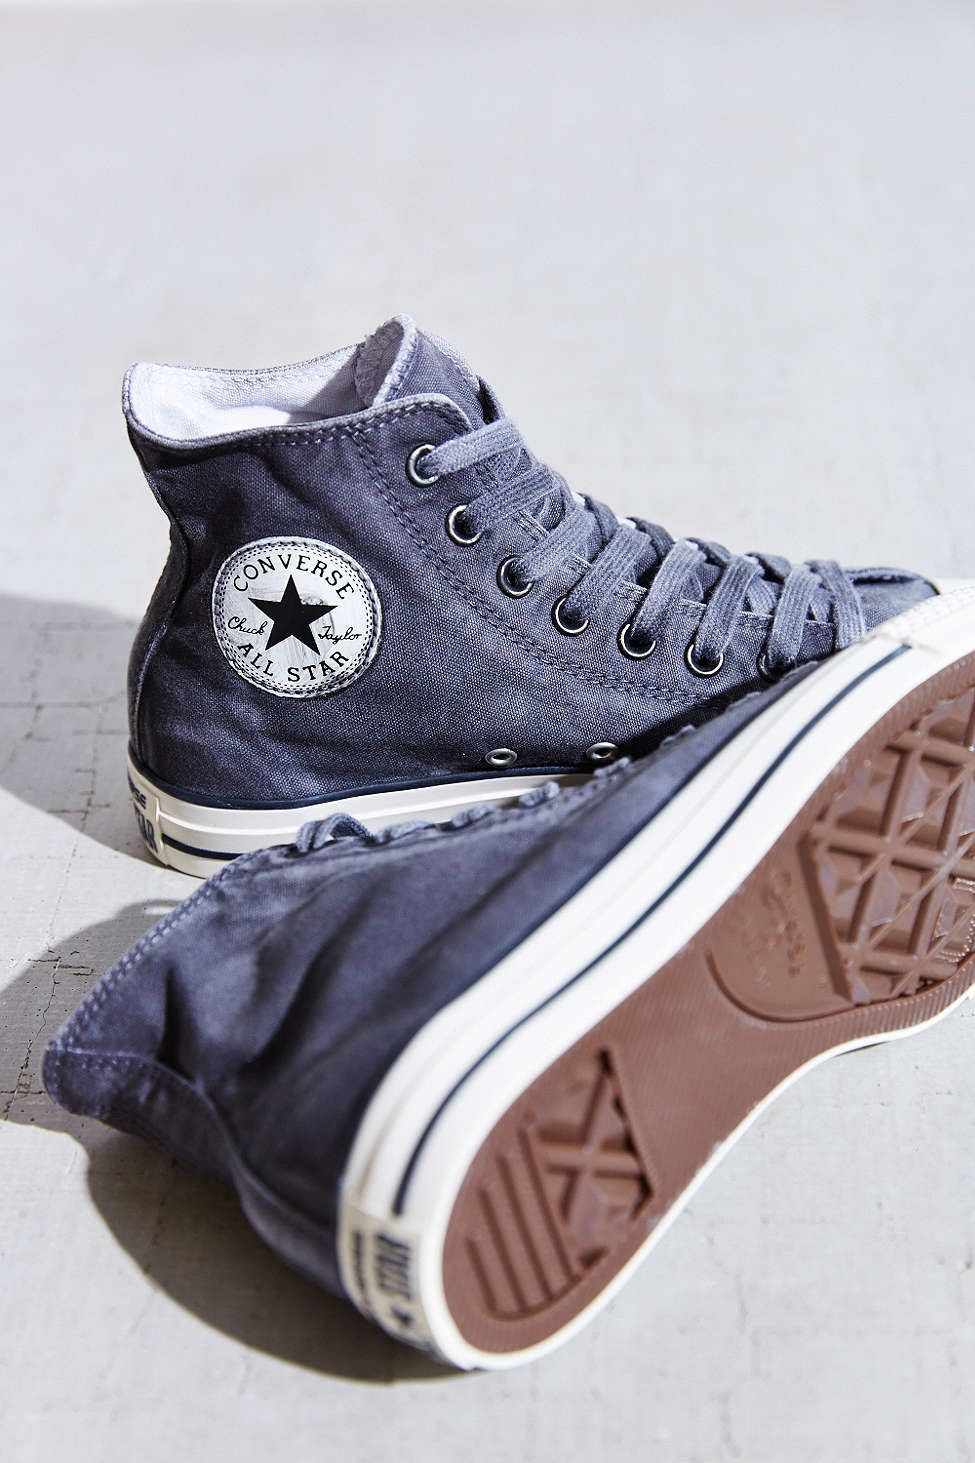 Converse Chuck Taylor All Star Washed High Top Sneaker